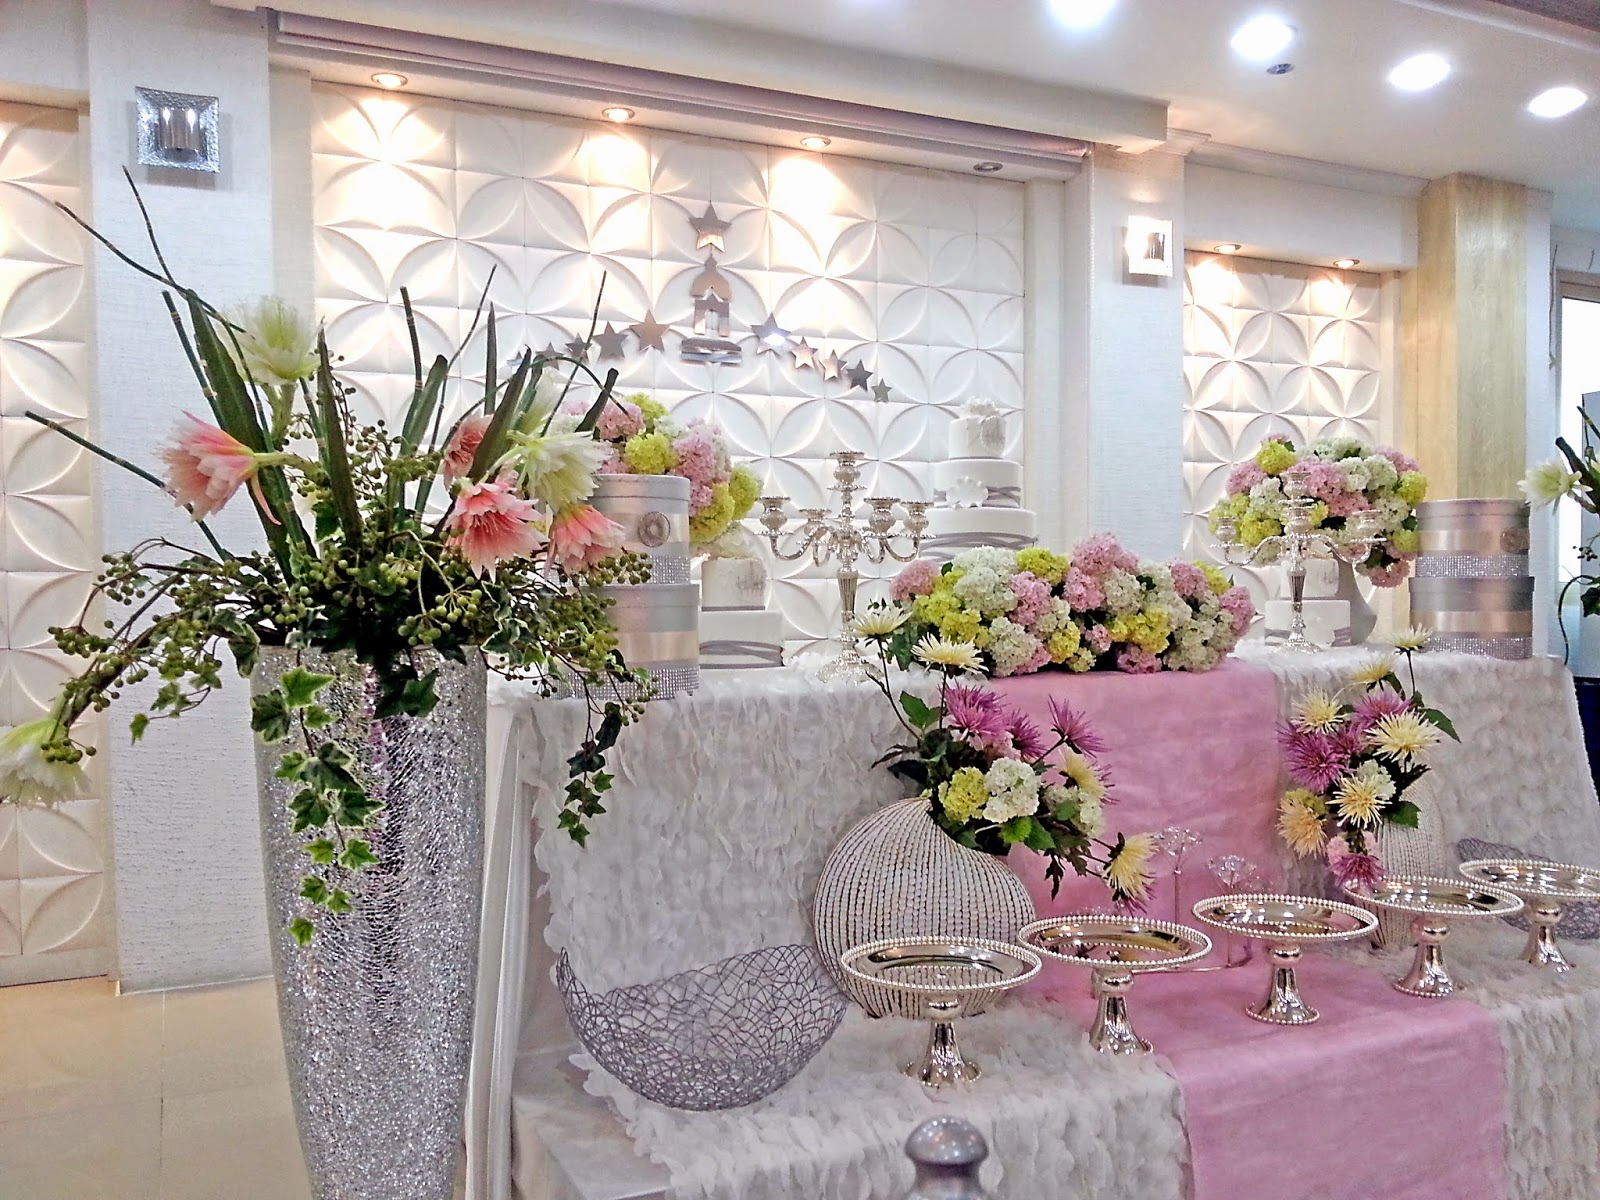 Potato queen travel and lifestyle korea day 5 jeju island we sat next to the stage which made us feel like bride and groom again korean wedding deco is so lovely junglespirit Image collections